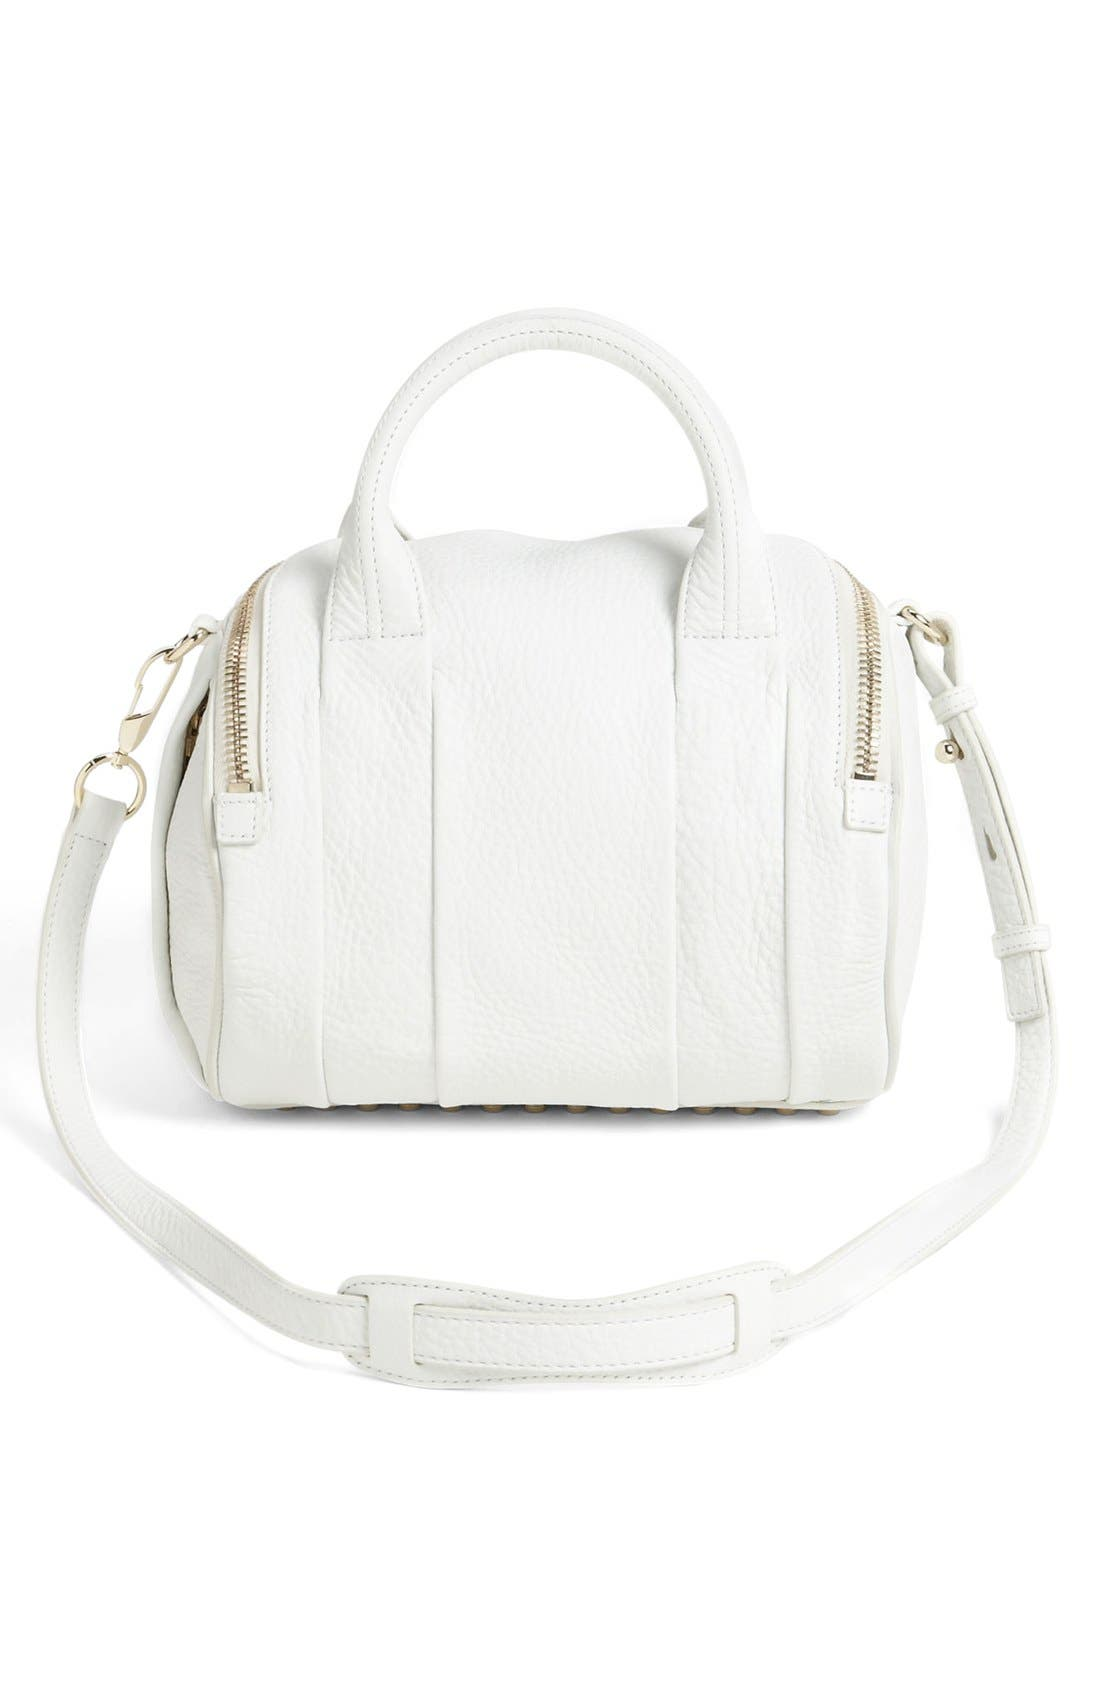 Alternate Image 3  - Alexander Wang 'Rockie - Pale Gold' Leather Crossbody Satchel